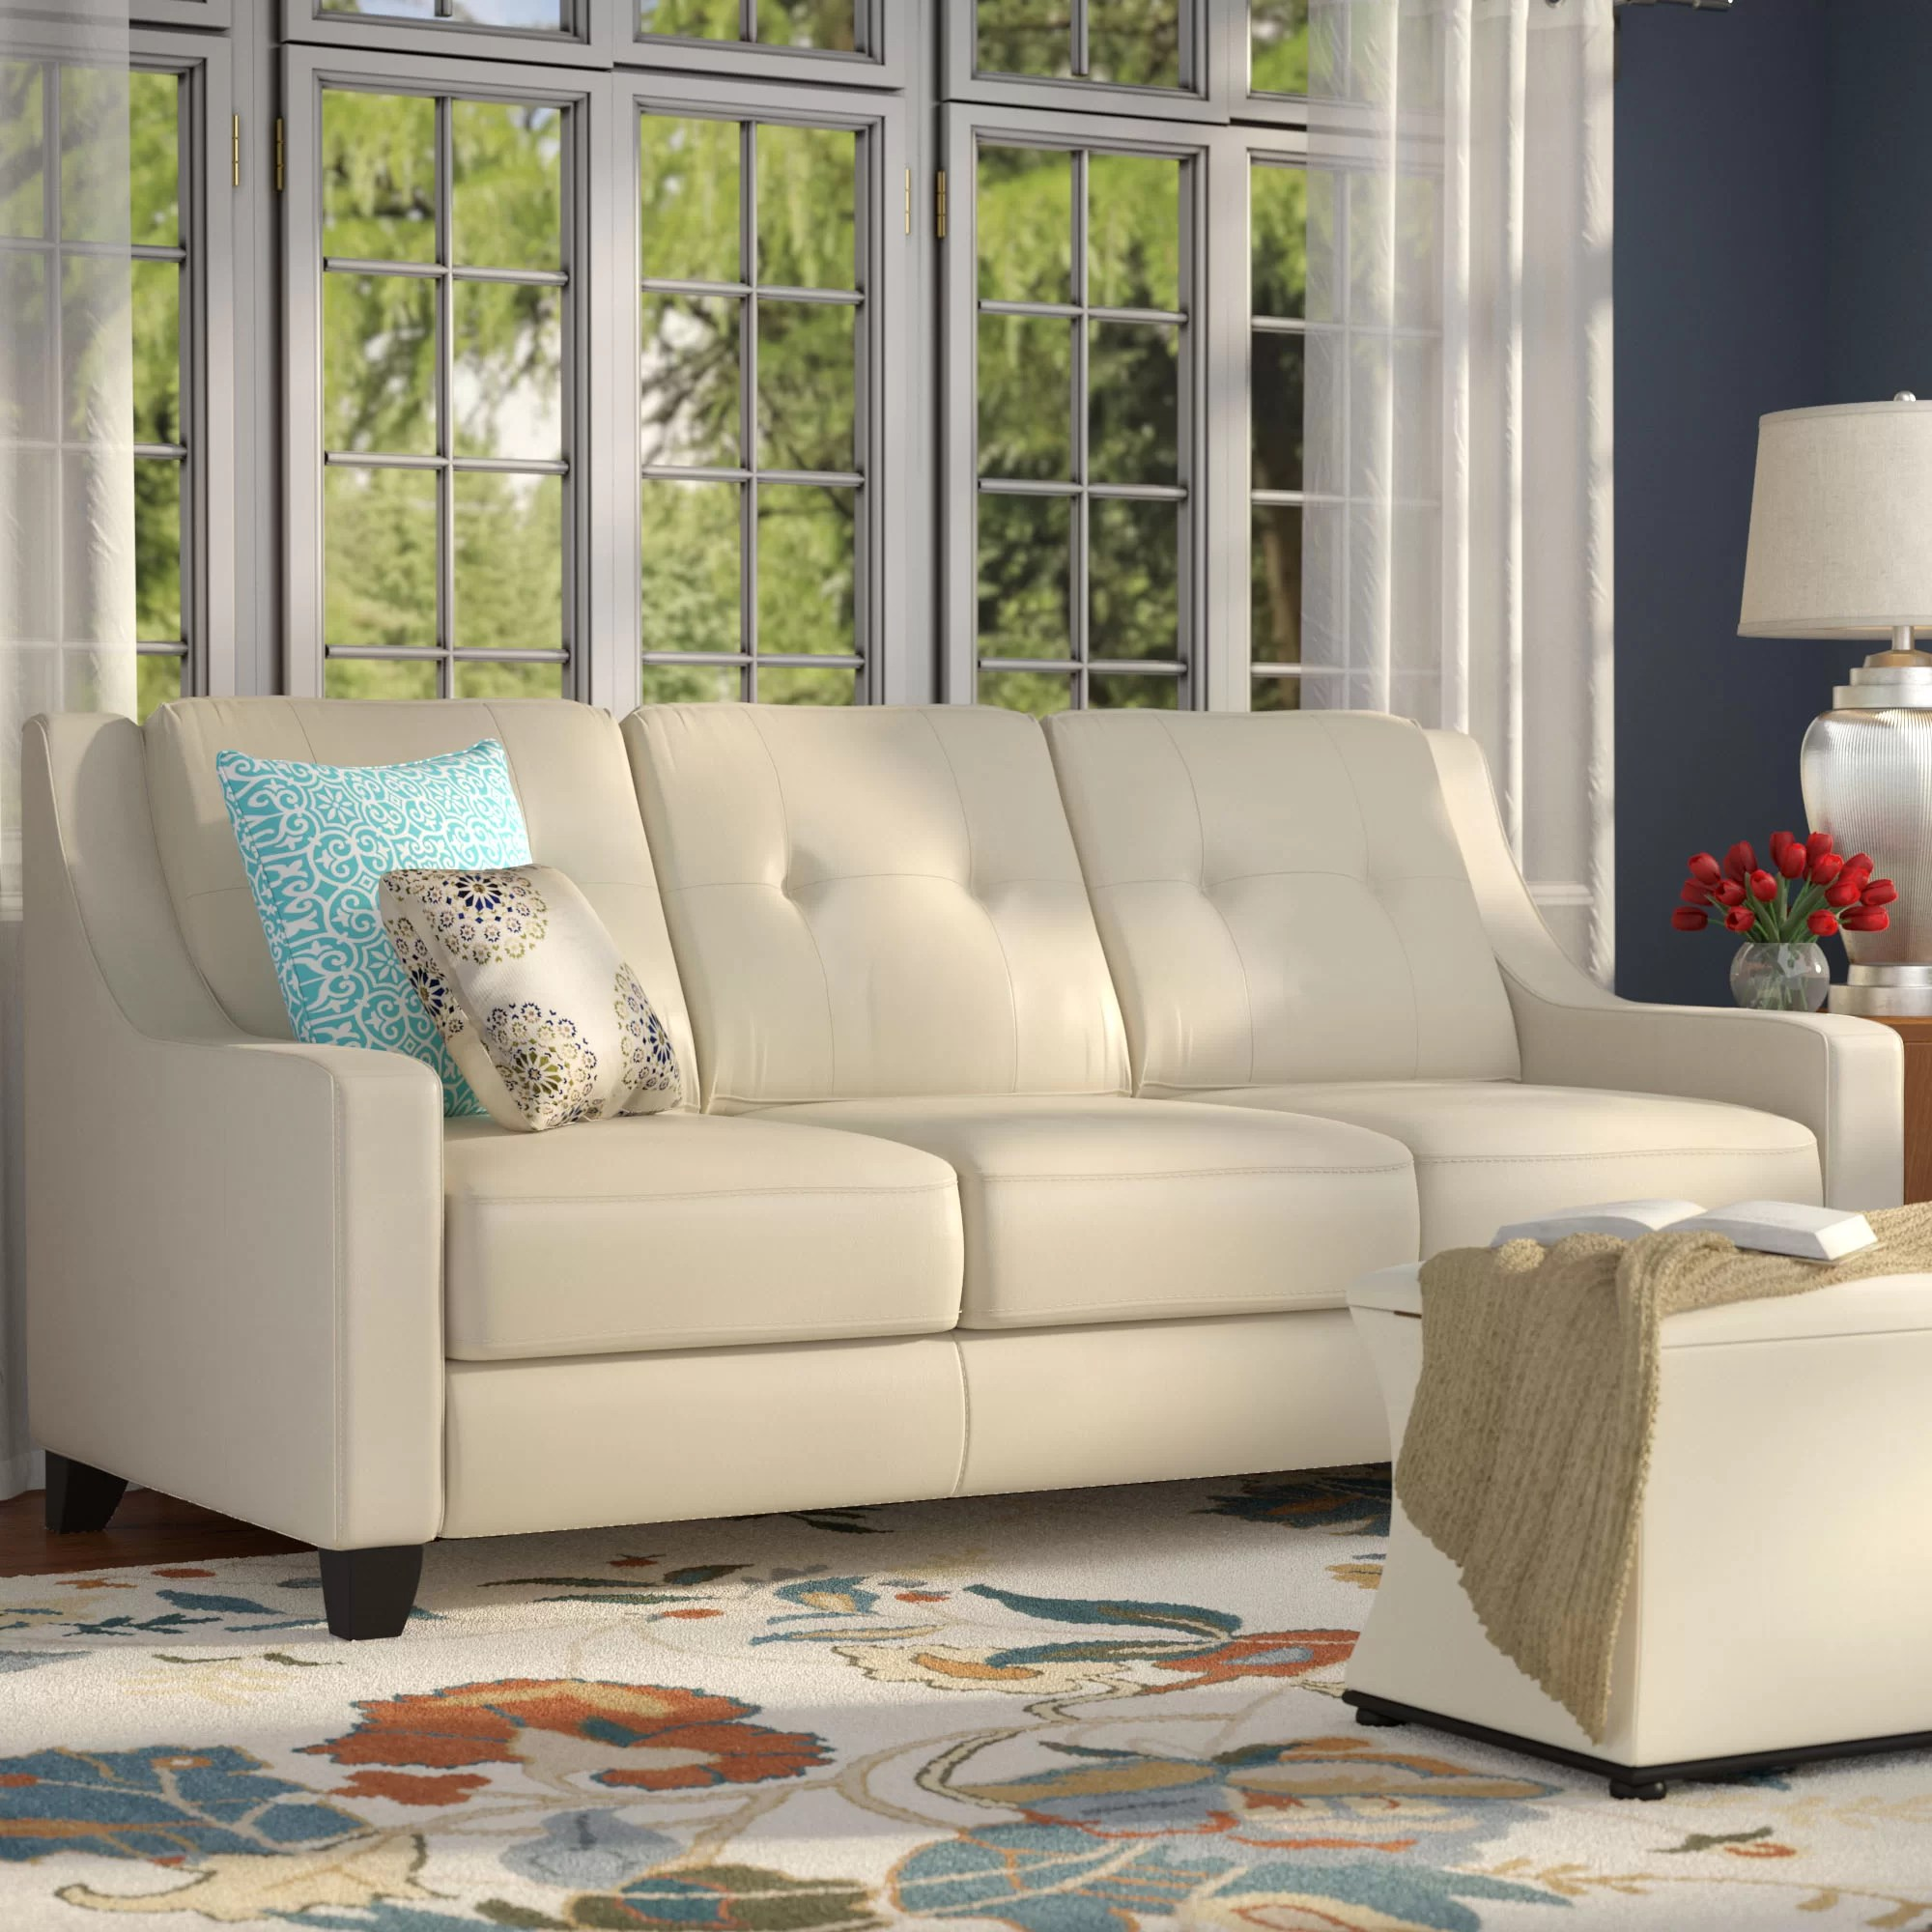 traditional sofa sleeper king size bed uk stouffer reviews birch lane